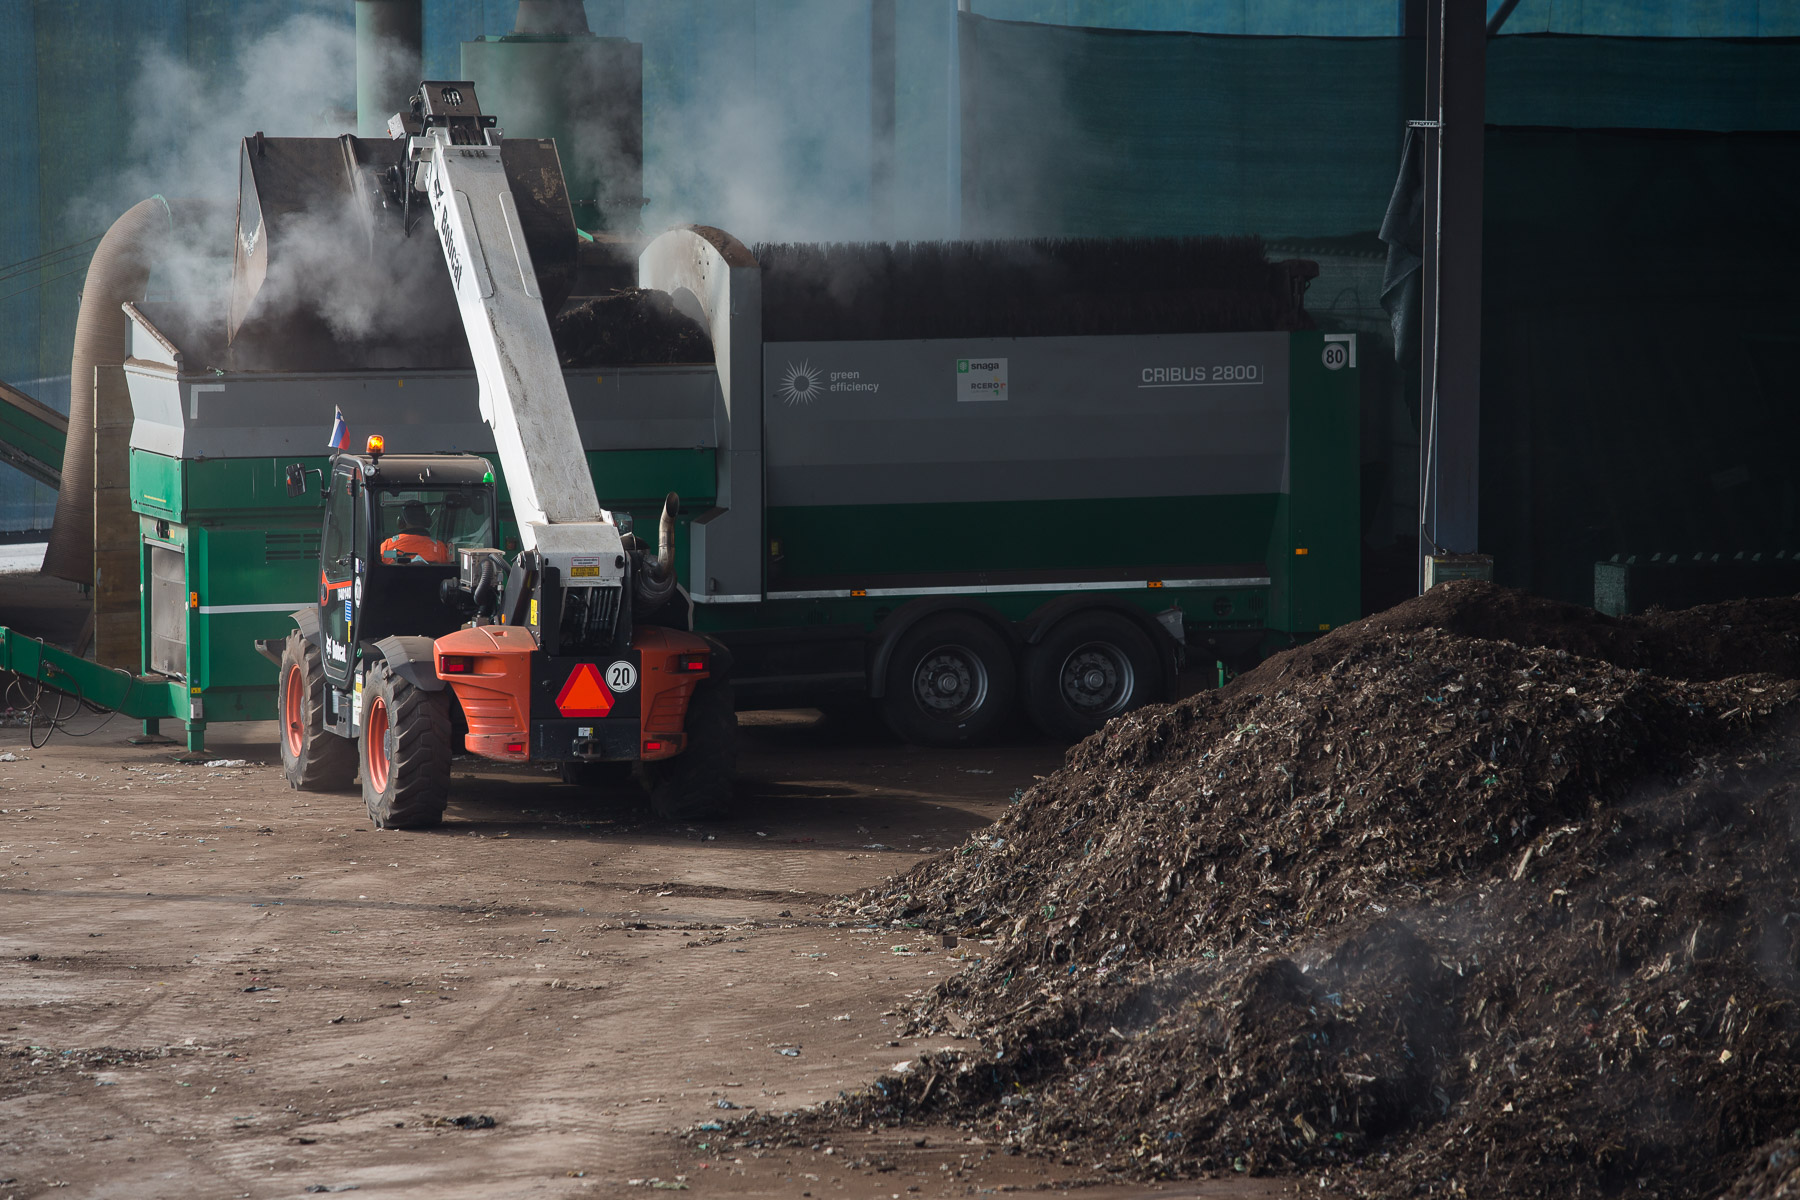 A loader dumps biomass into a sieving machine in the composting facility of RCERO Ljubljana.